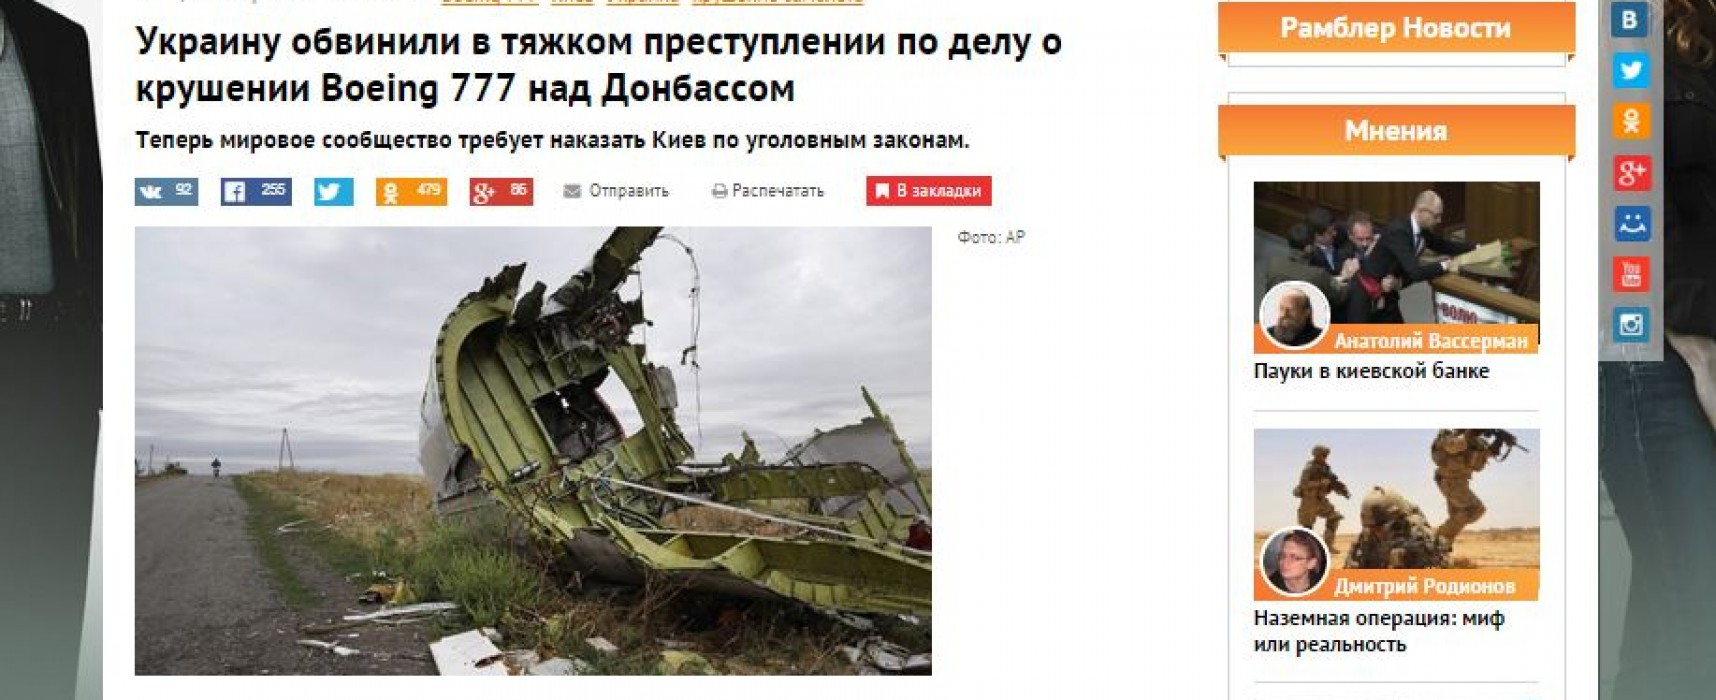 Fake: the Netherlands Accuse Ukraine of criminality in the MH17 Investigation